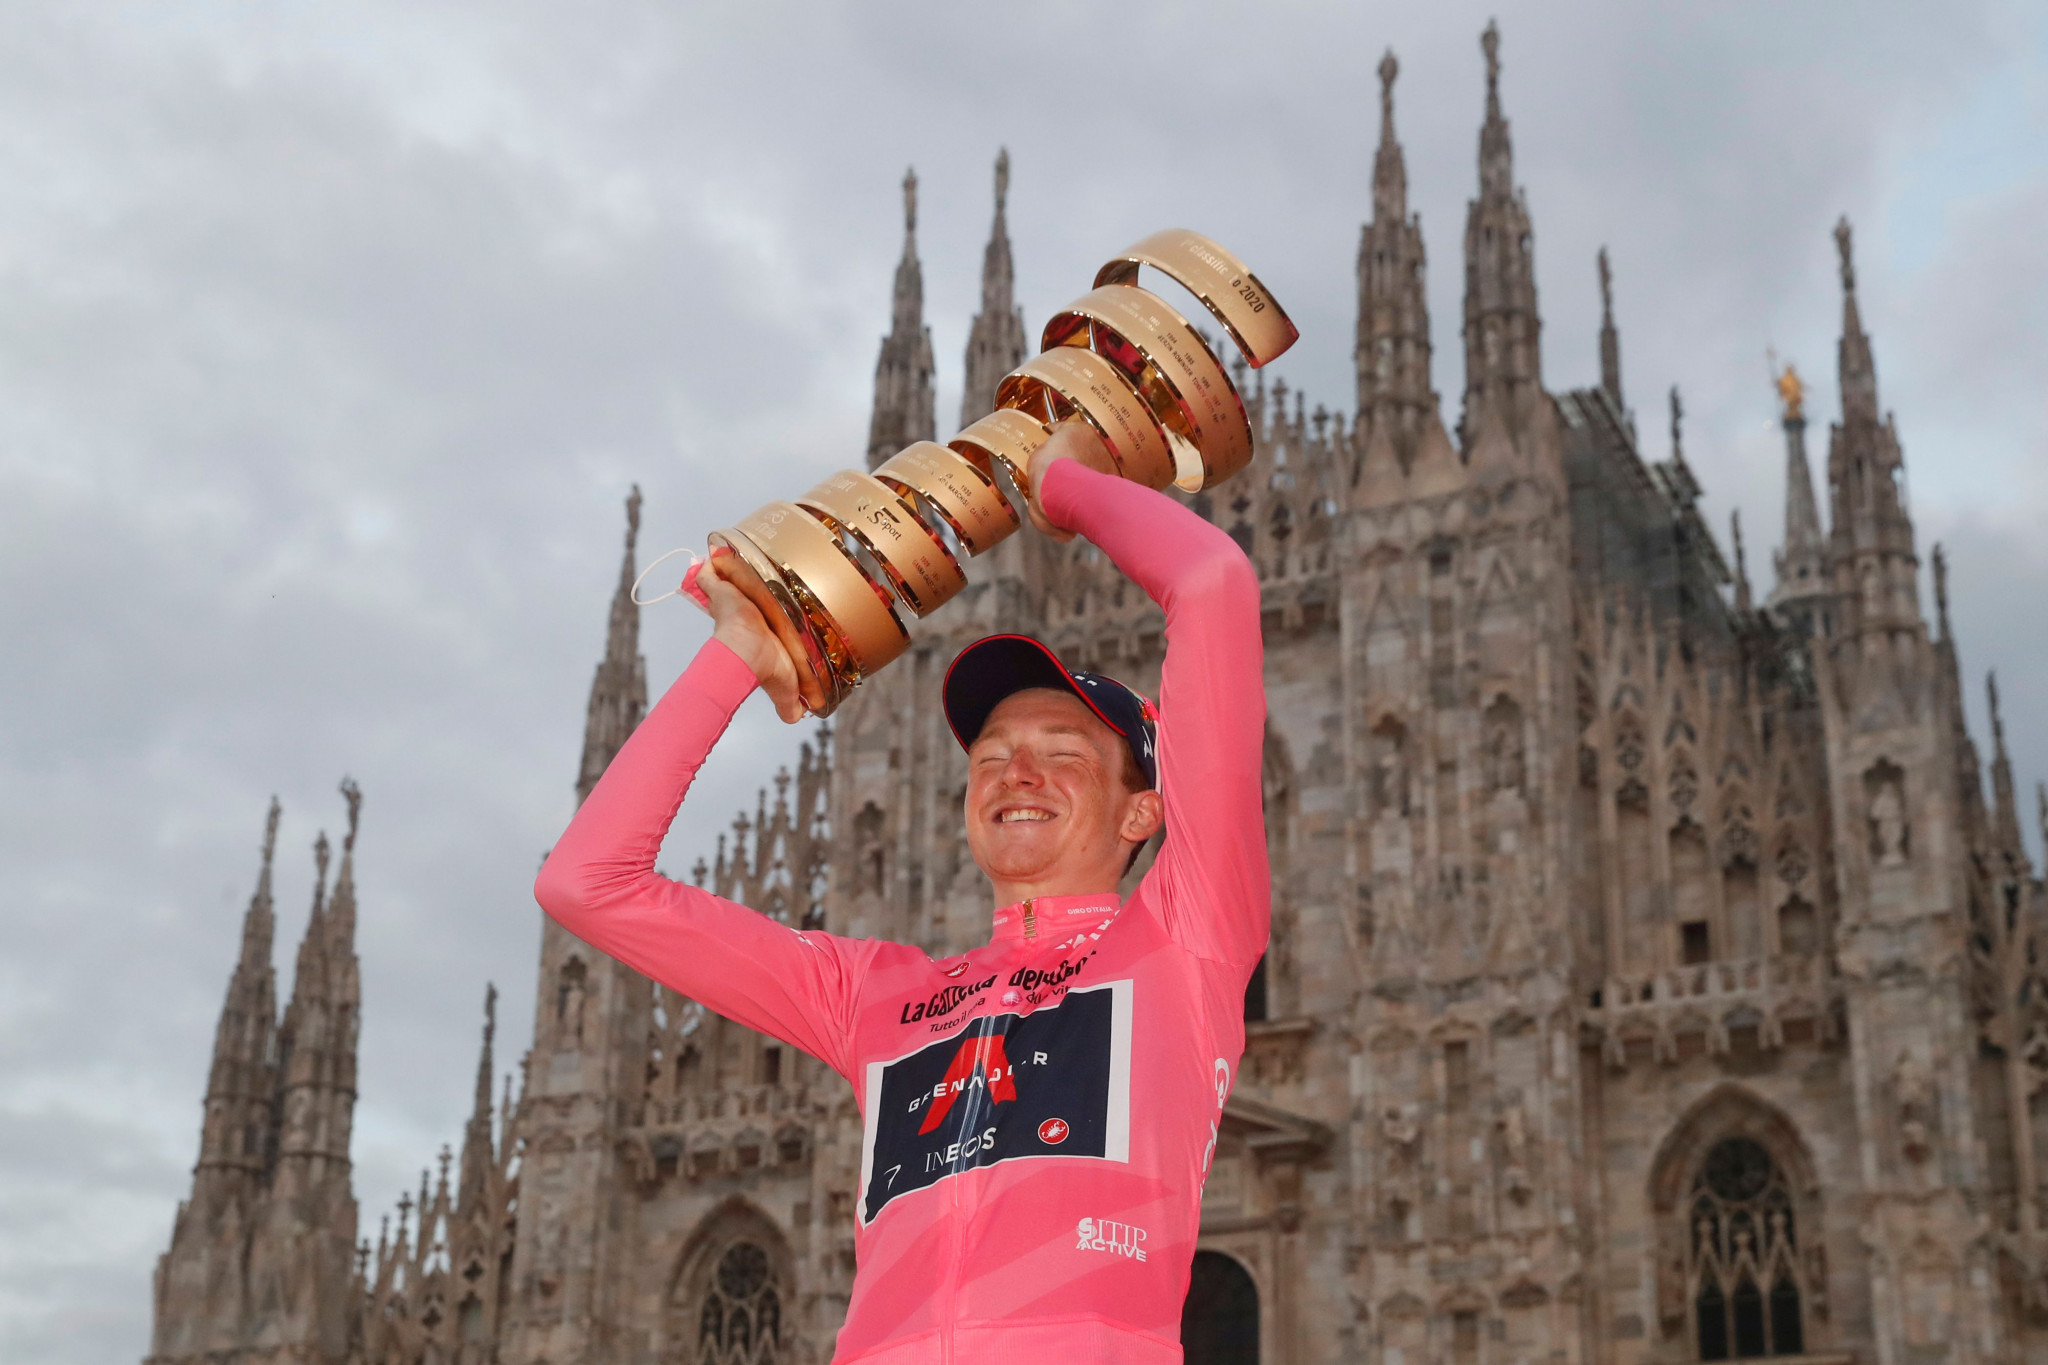 Geoghegan Hart wins Giro d'Italia after beating rival Hindley in final time trial